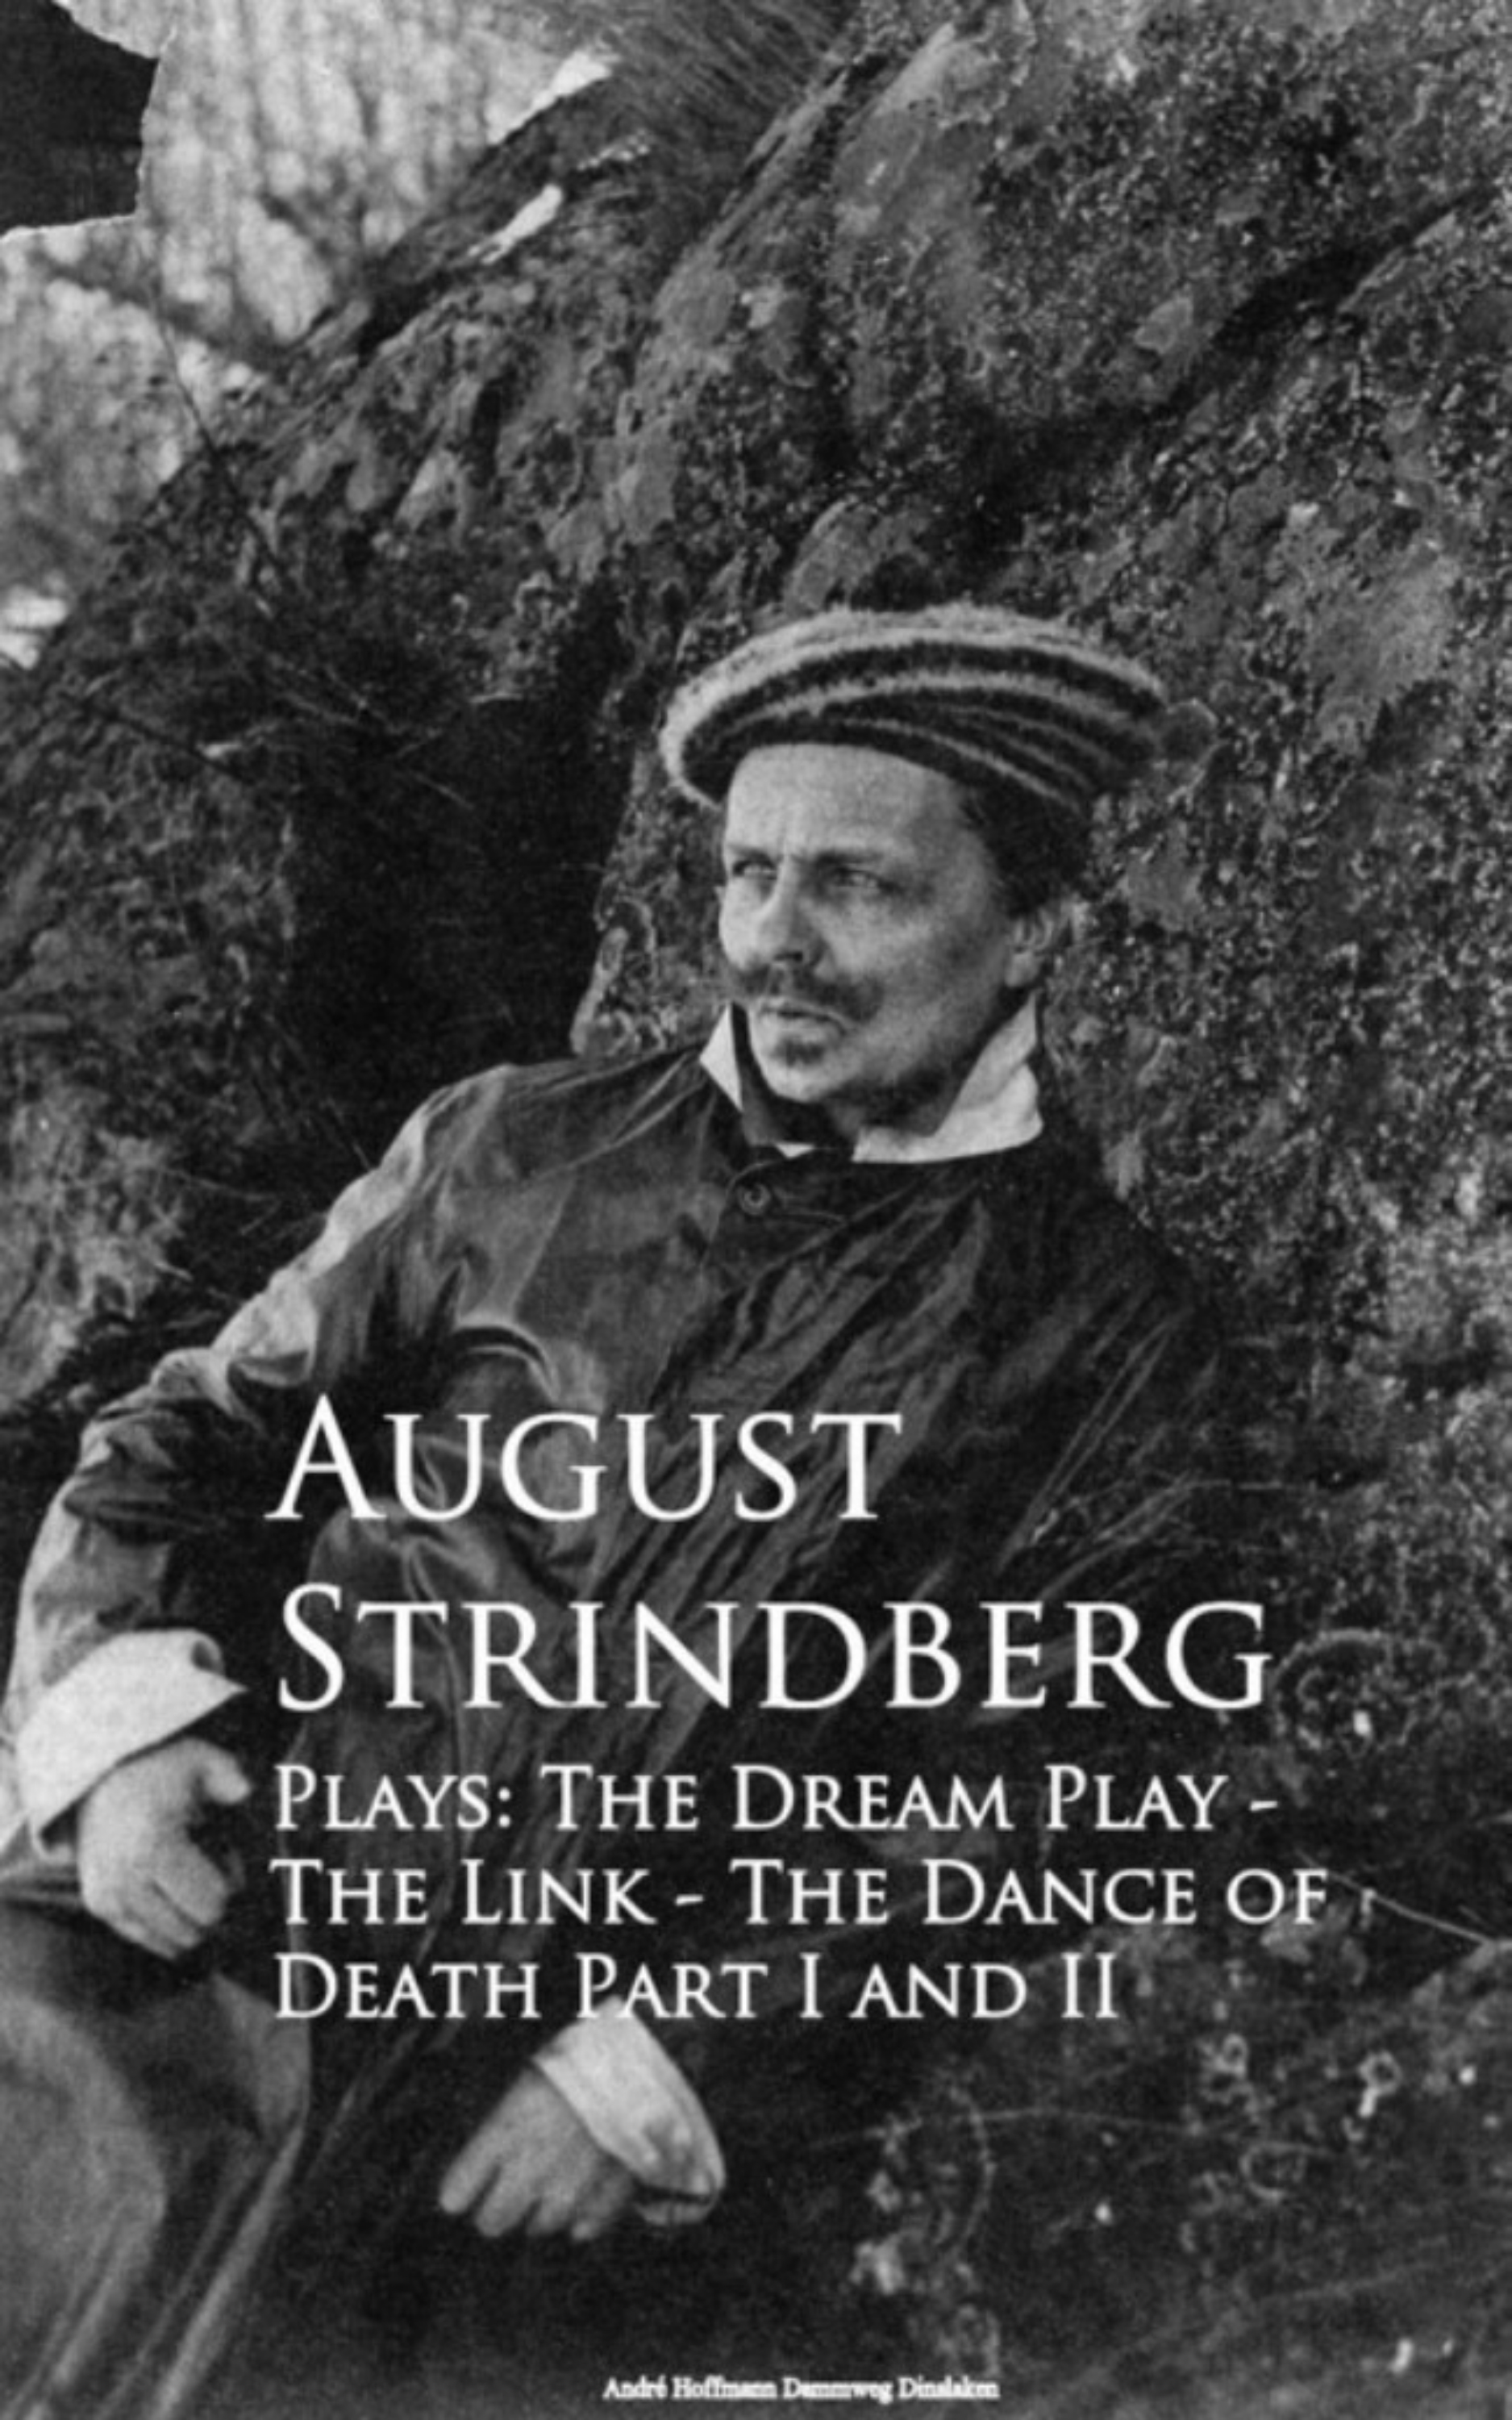 August Strindberg Plays: The Dream Play - The Link - The Dance of Death Part I and II bandshop sticker i play the guitar